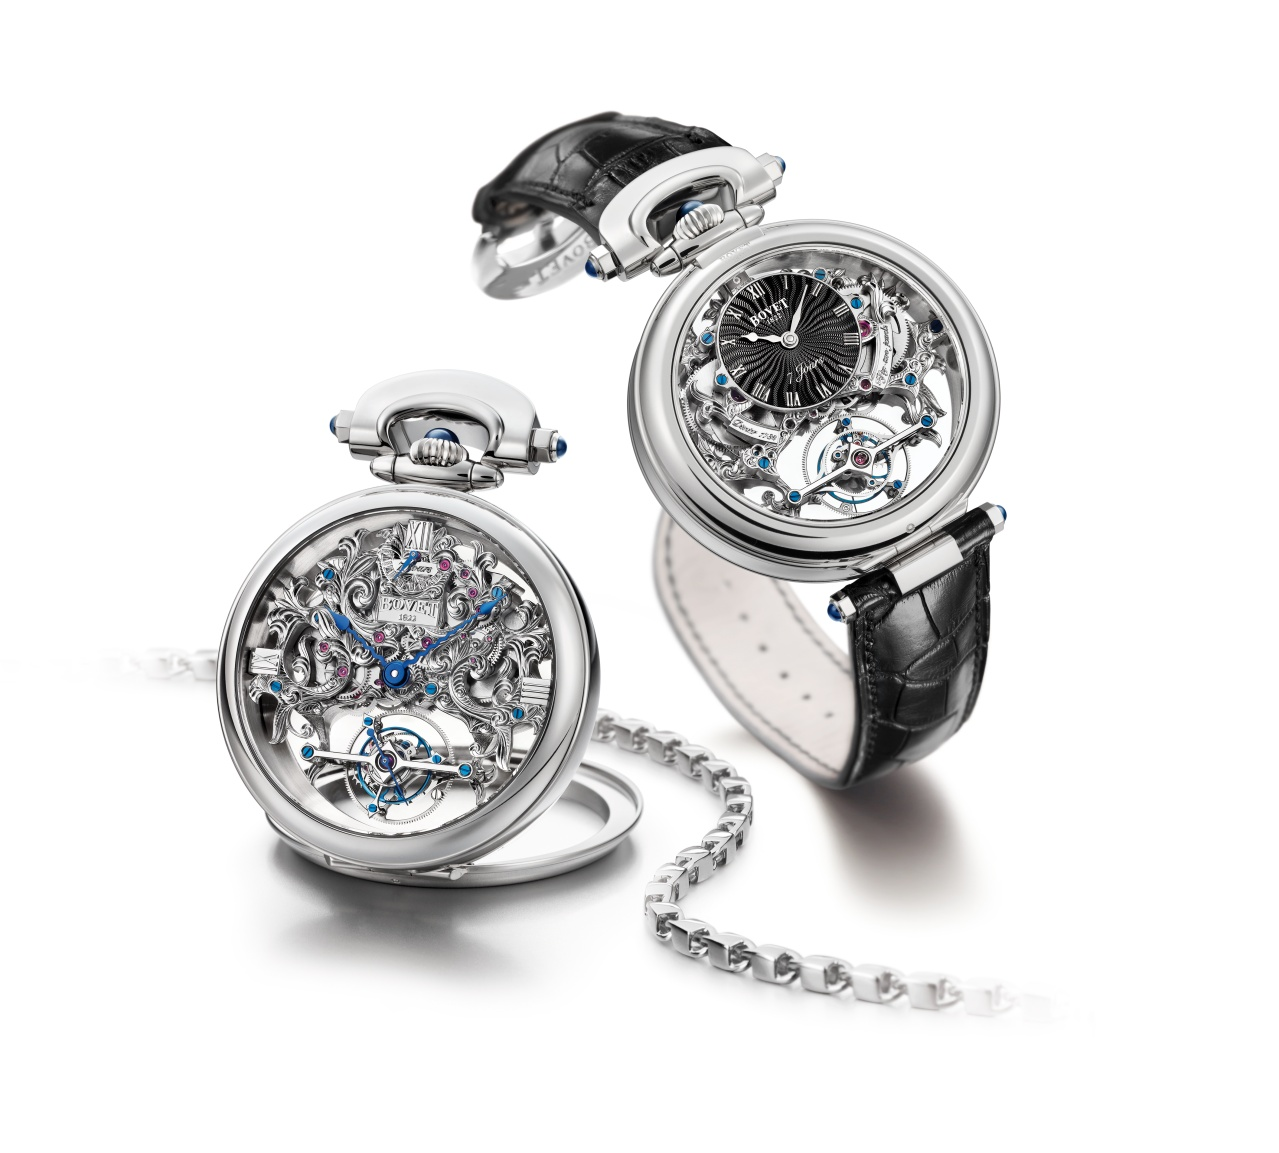 Bovet Watch   Amadeo Fleurier Grandes Complications   Ref. Nr. AIFSQ16    Call 312-944-3100  | For Availability